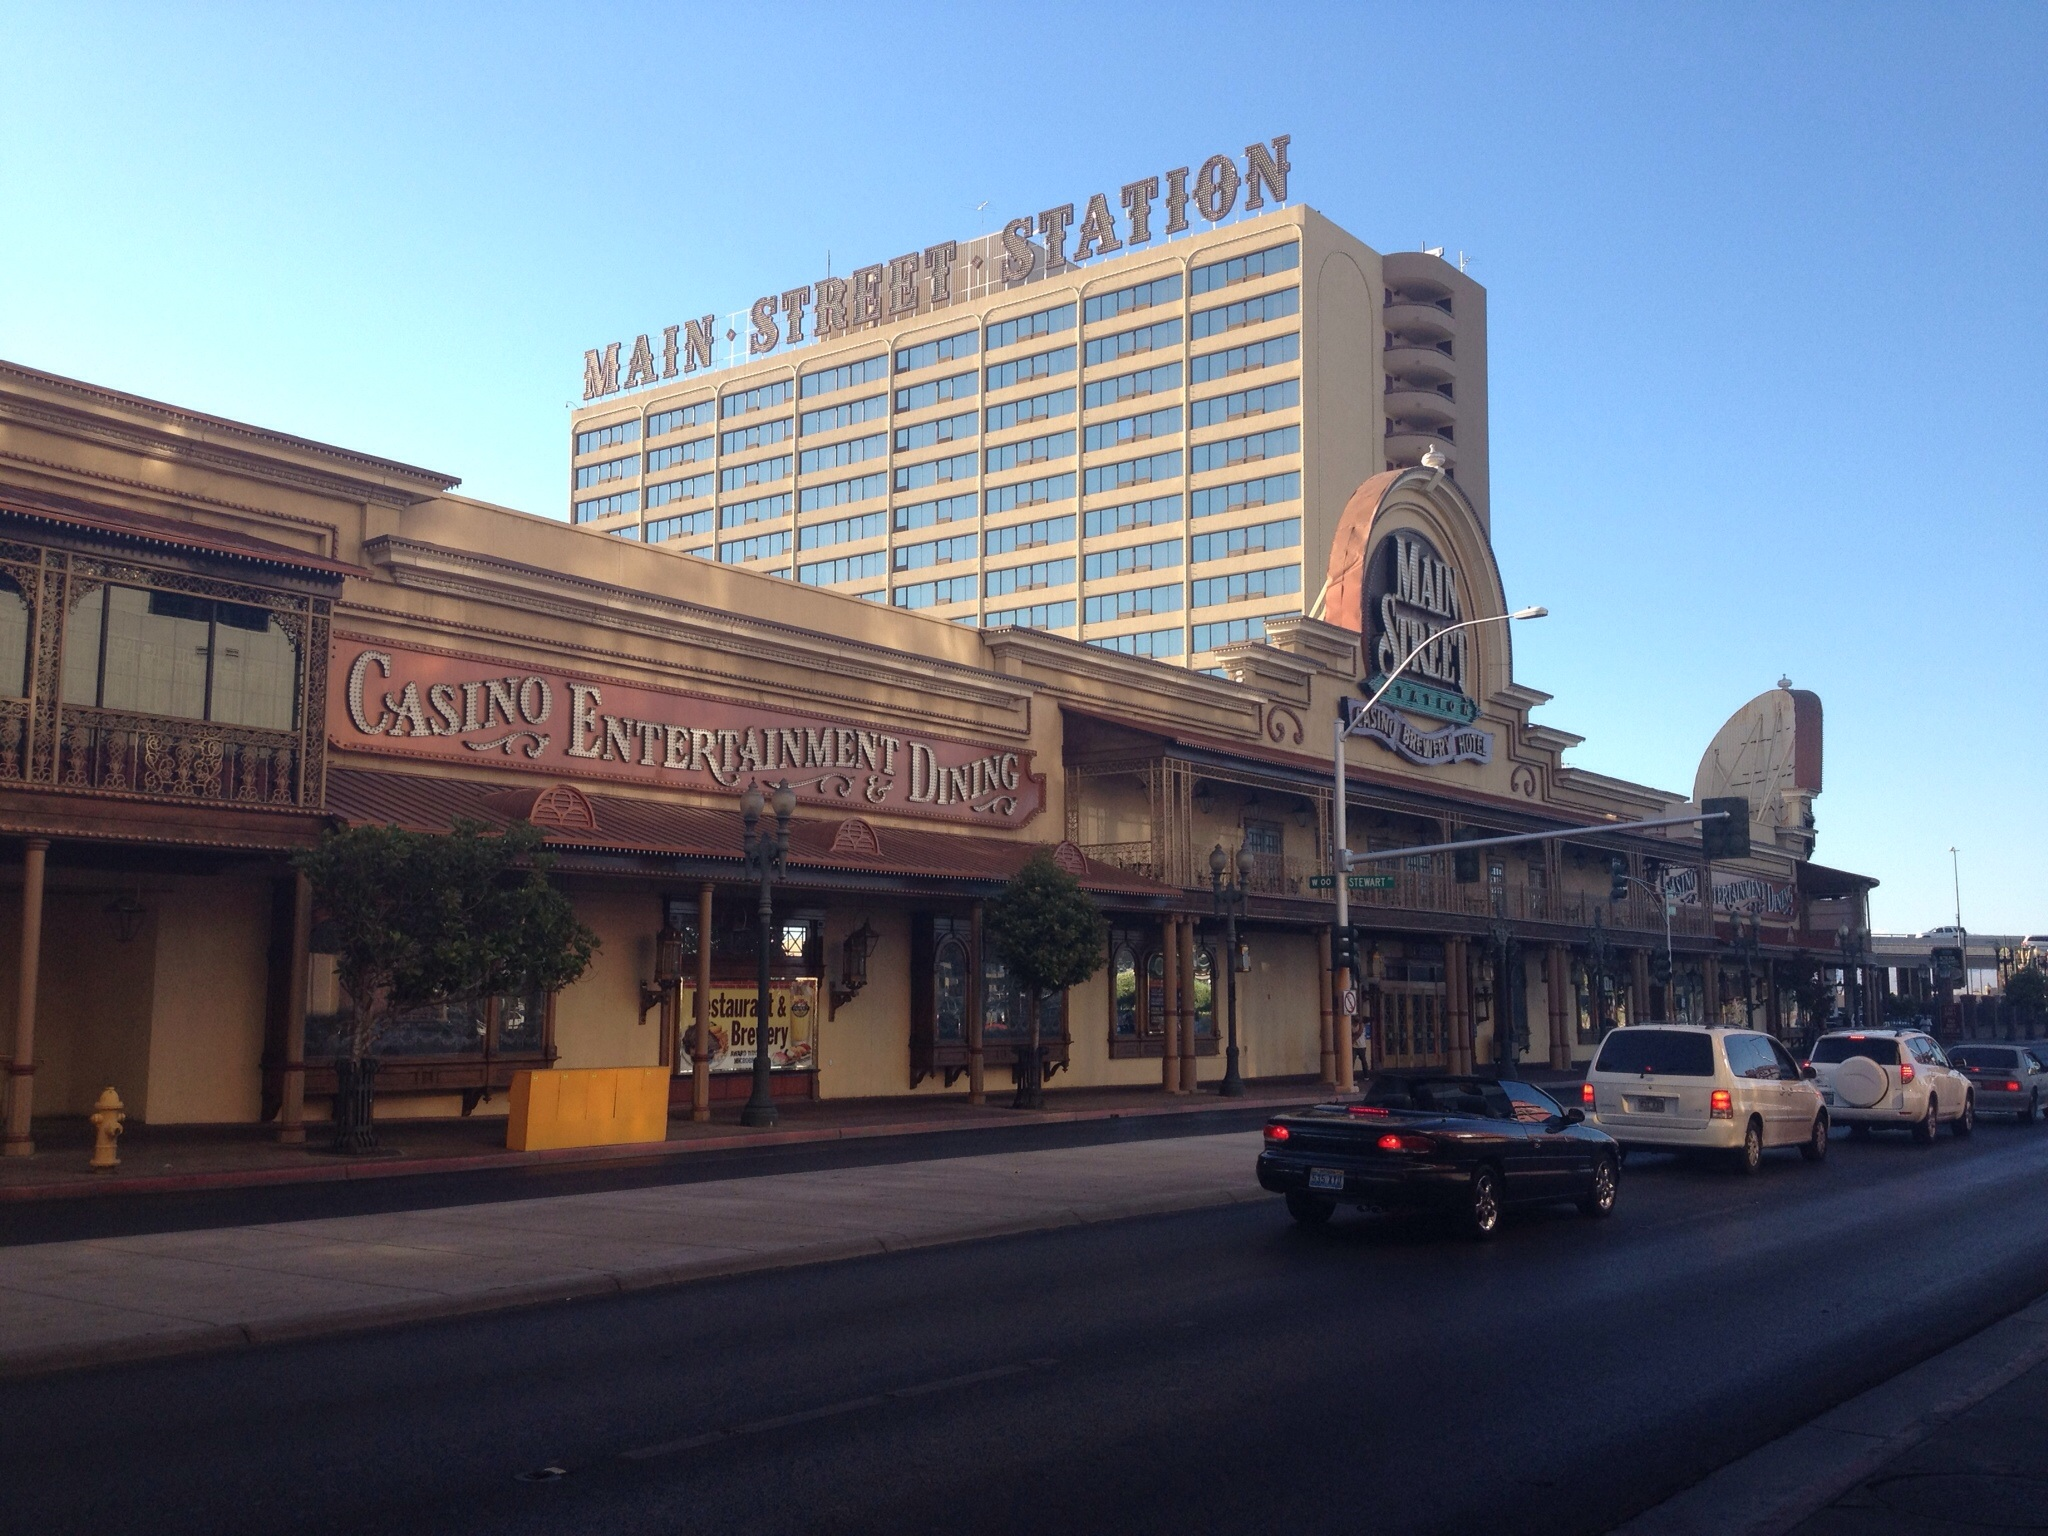 This is the old side of Vegas, at the north end of the Strip